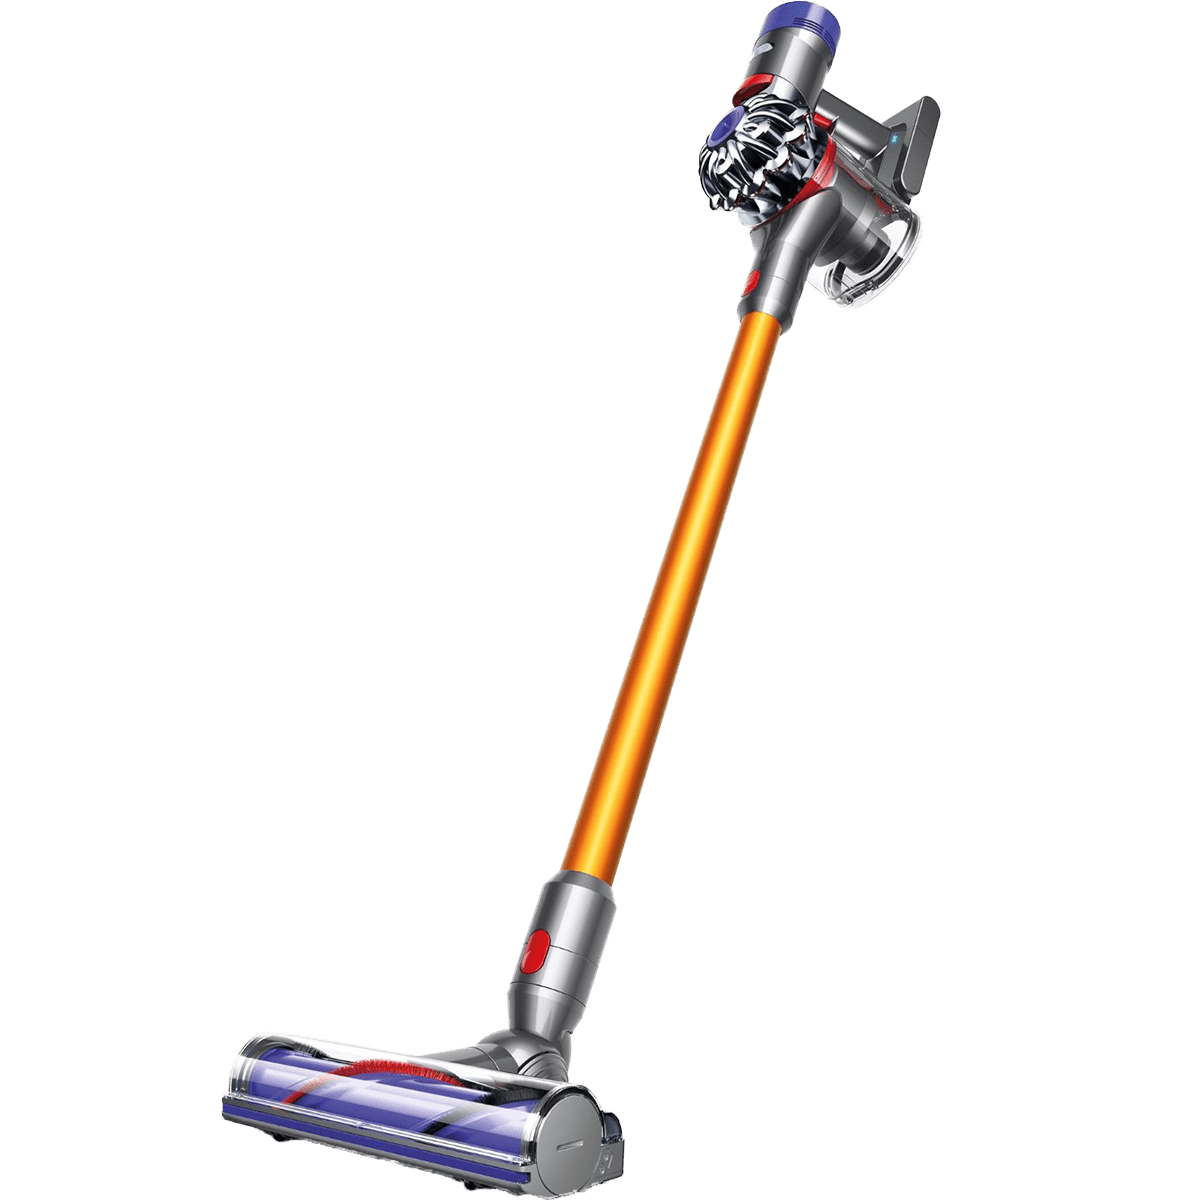 dyson v8 absolute cordless vacuum sylvane. Black Bedroom Furniture Sets. Home Design Ideas